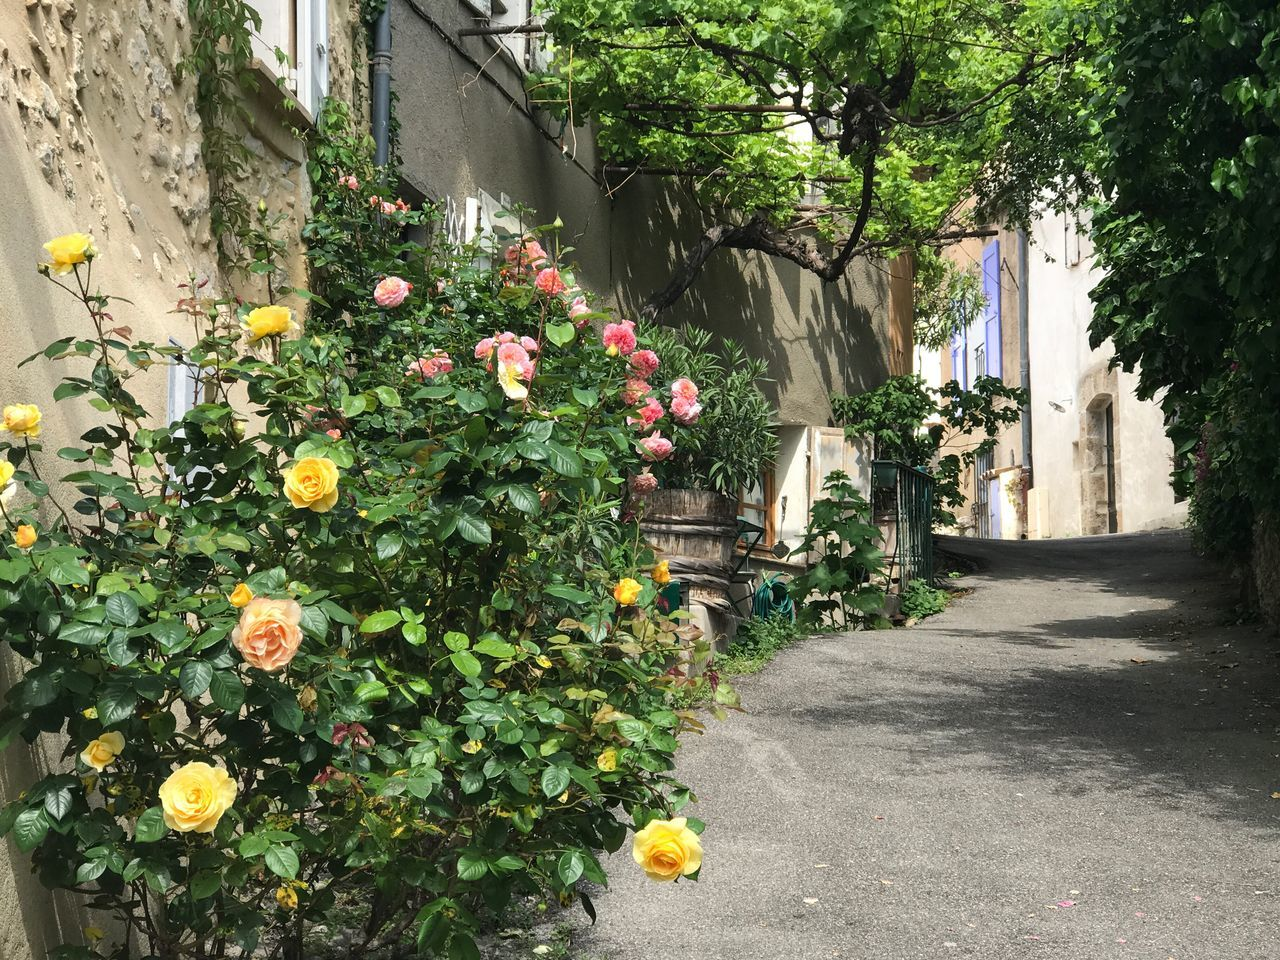 Village street Flower Plant Day Outdoors No People Growth Built Structure Building Exterior Architecture Nature Roses Flowers  Blossom Freshness Yellow